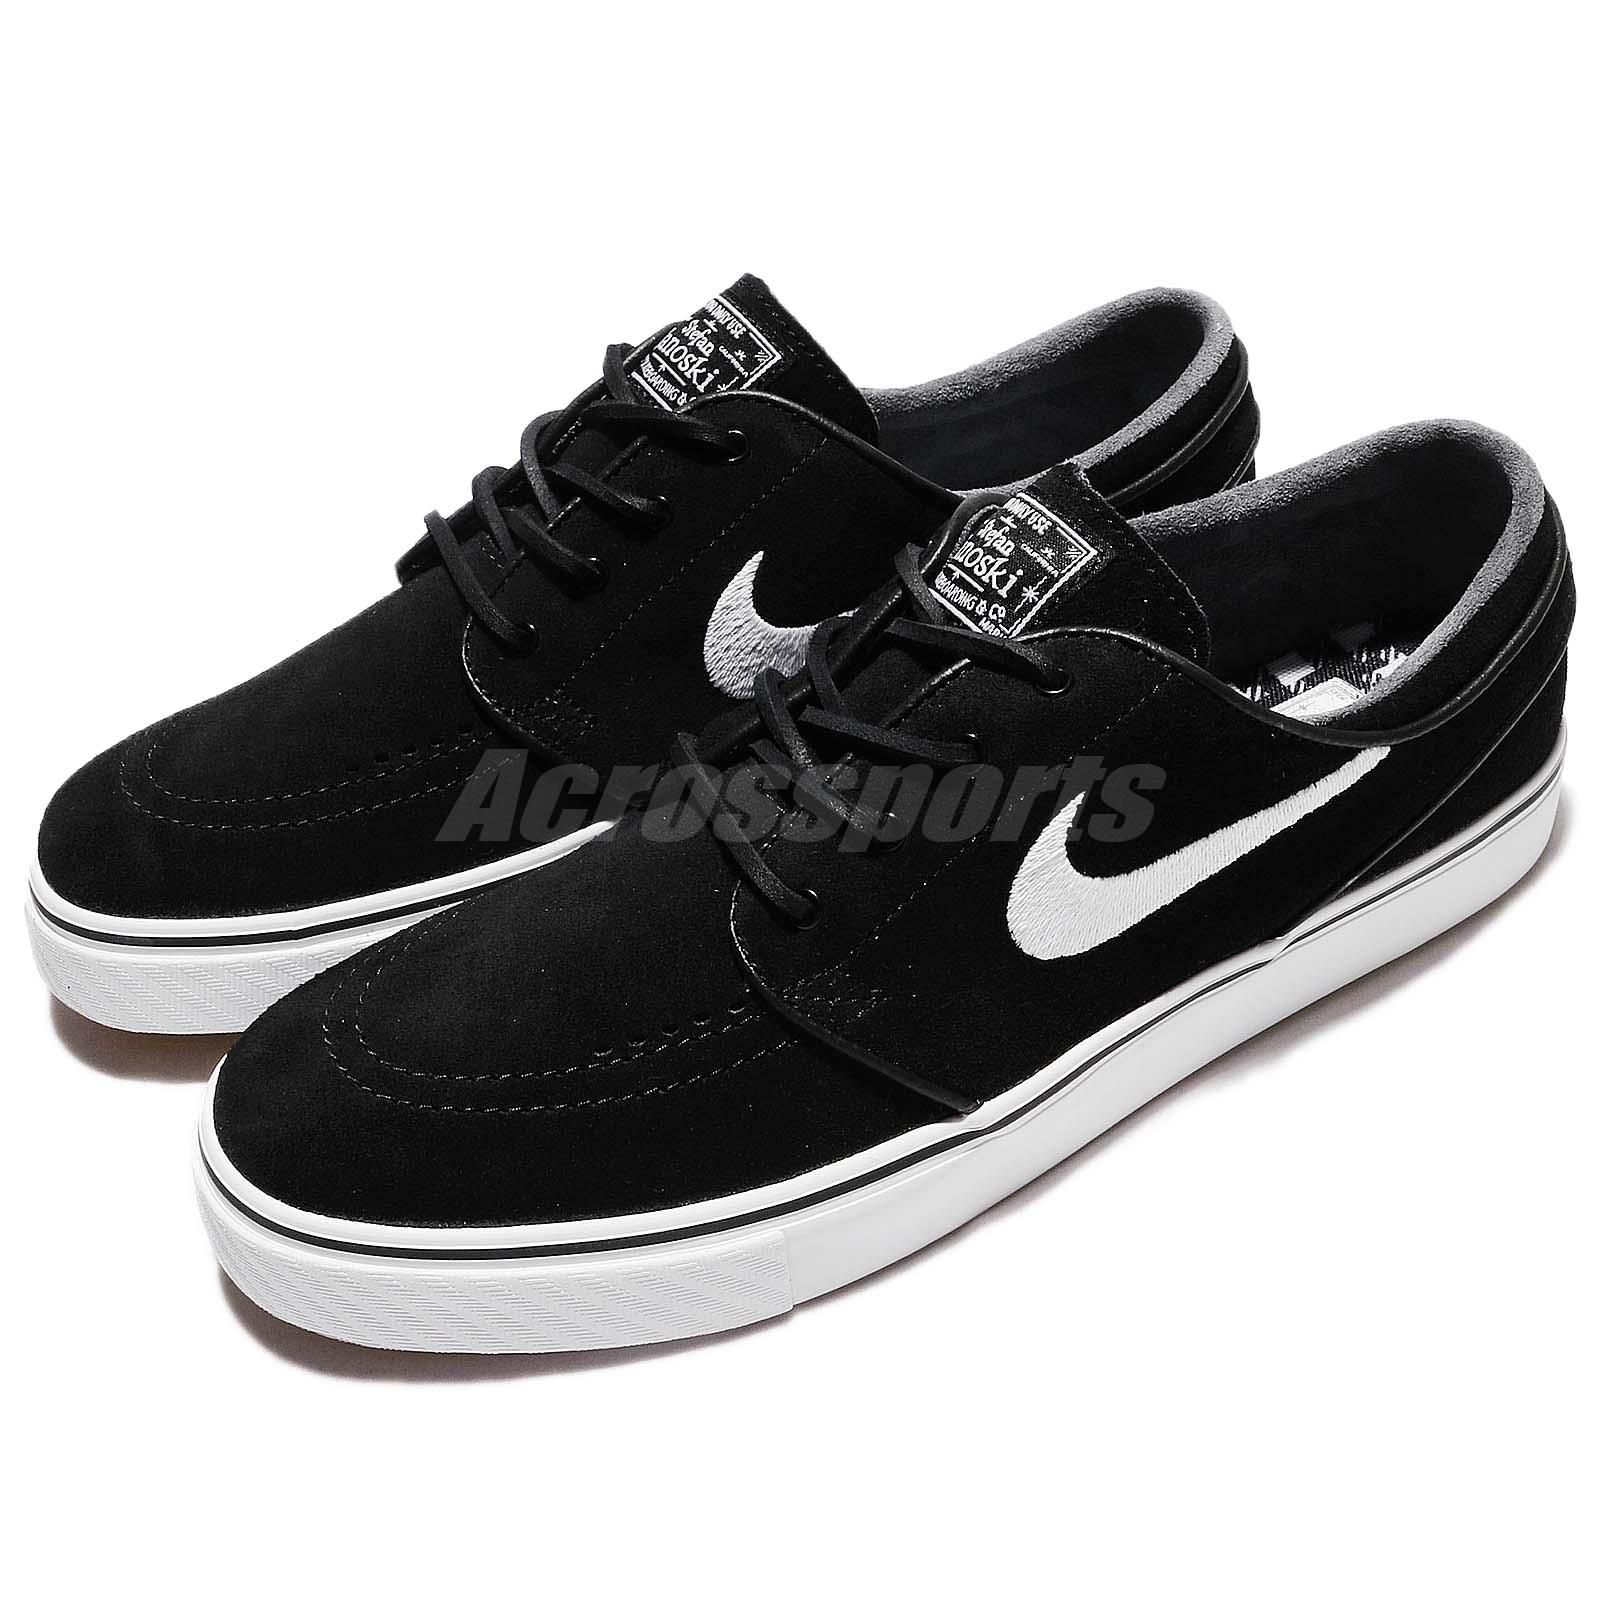 uk availability 9c01f 83d5e Details about Nike SB Air Zoom Stefan Janoski OG Black White Men Skateboarding  Shoe 833603-012